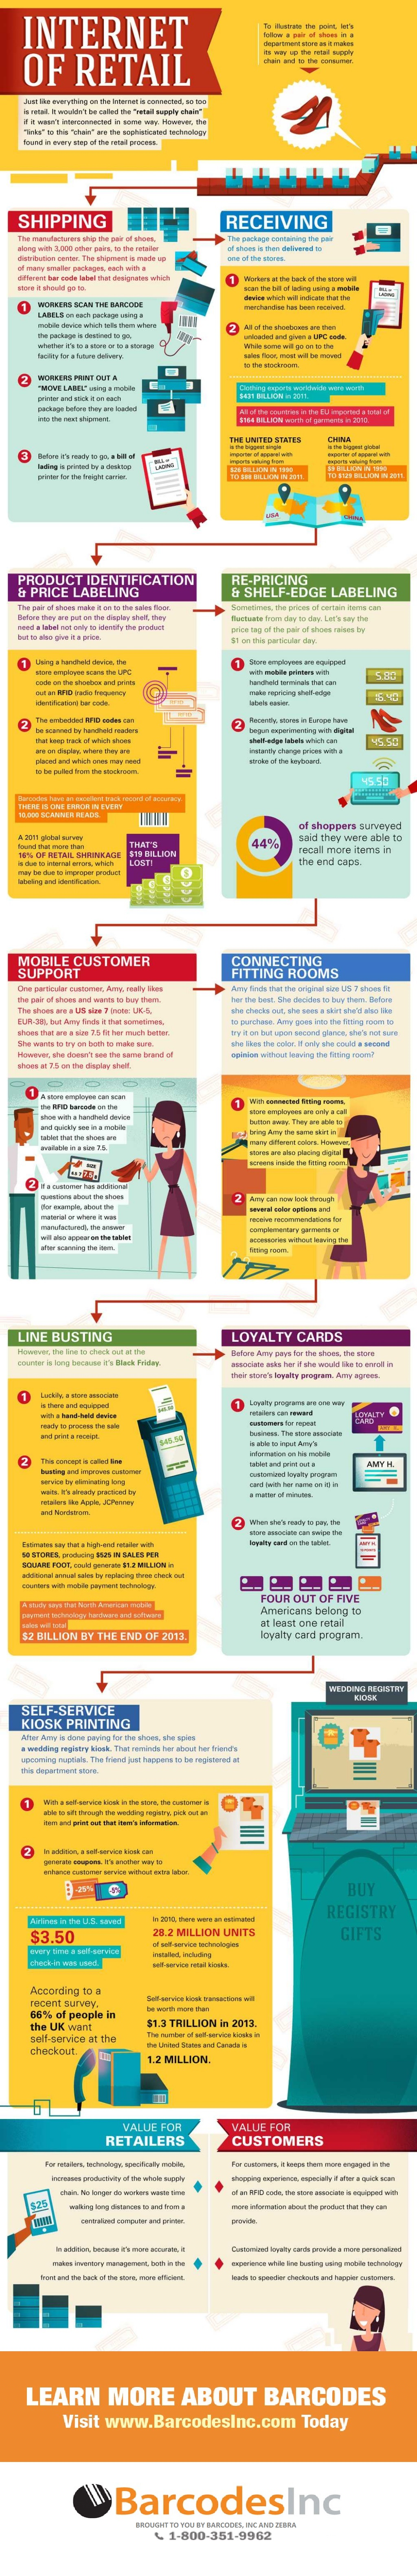 the-internet-of-retail-1-1024